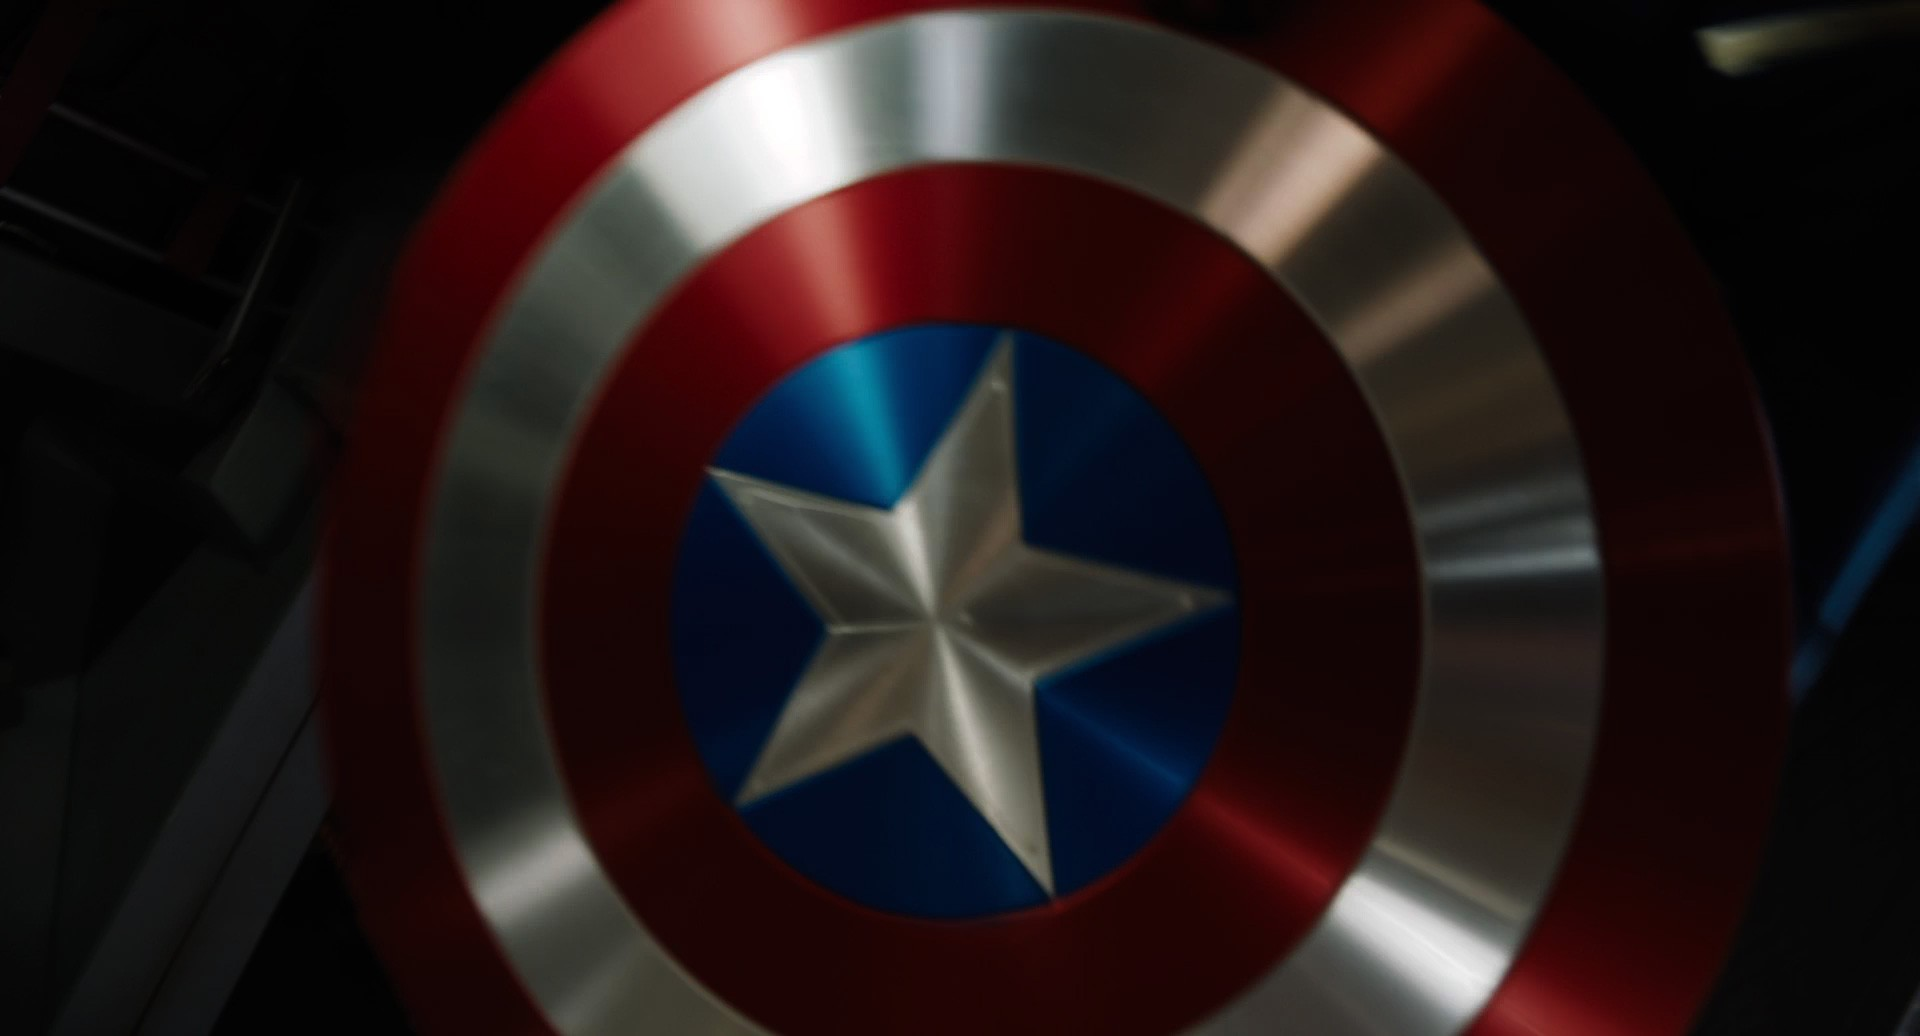 Captain America Wallpaper 1920x1036 Captain America Shield The 1920x1036